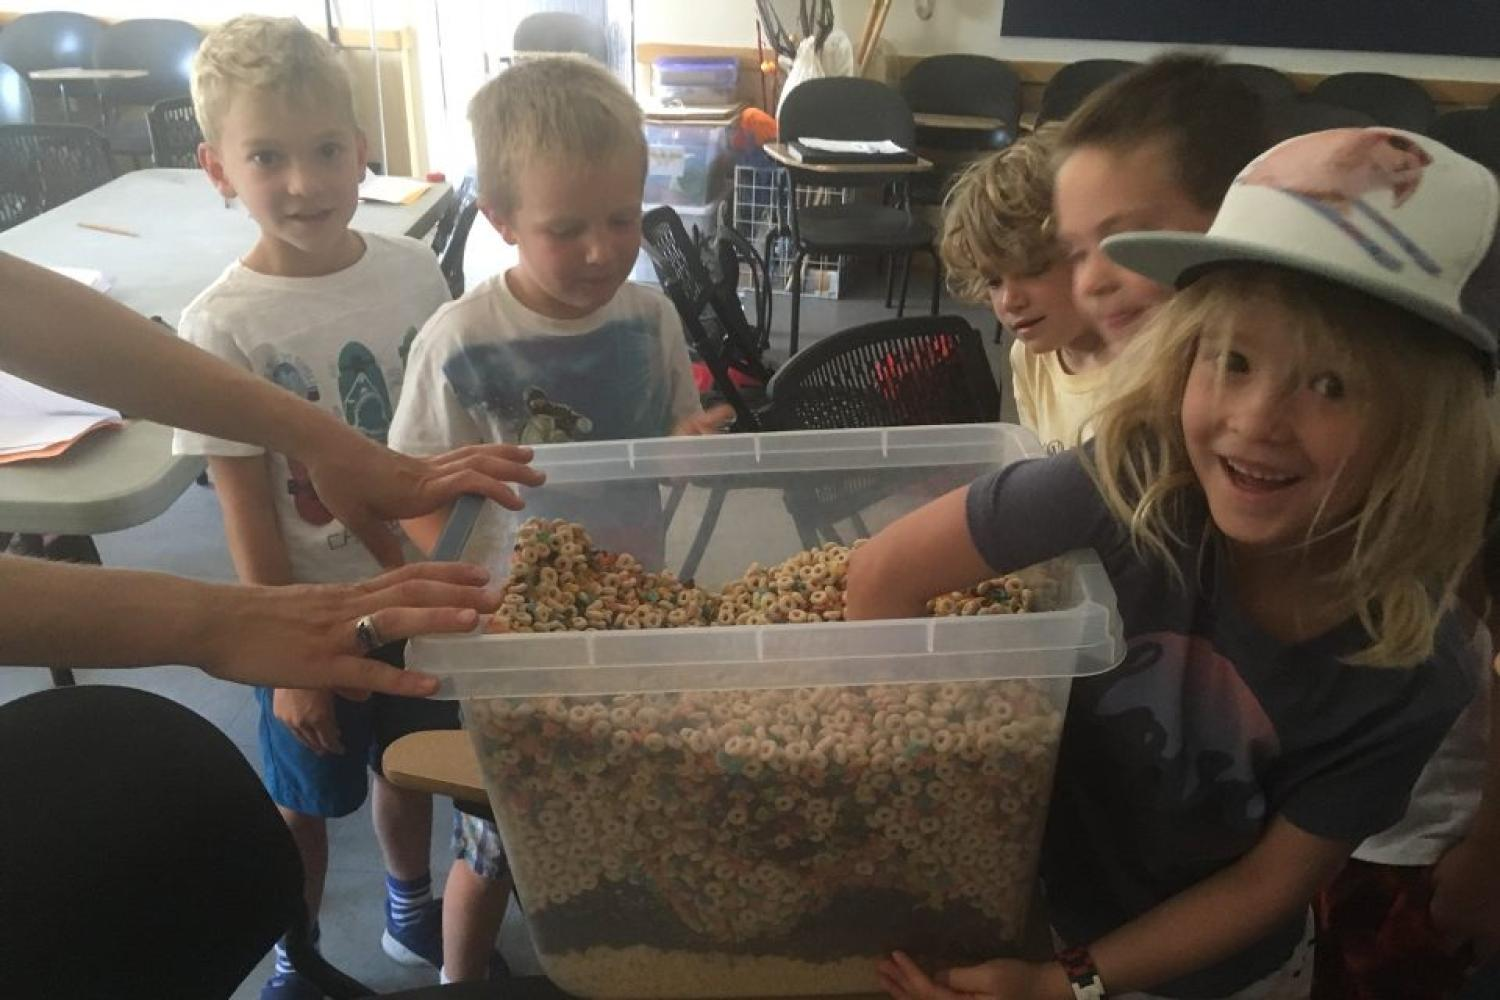 Children playing with bin of cereal